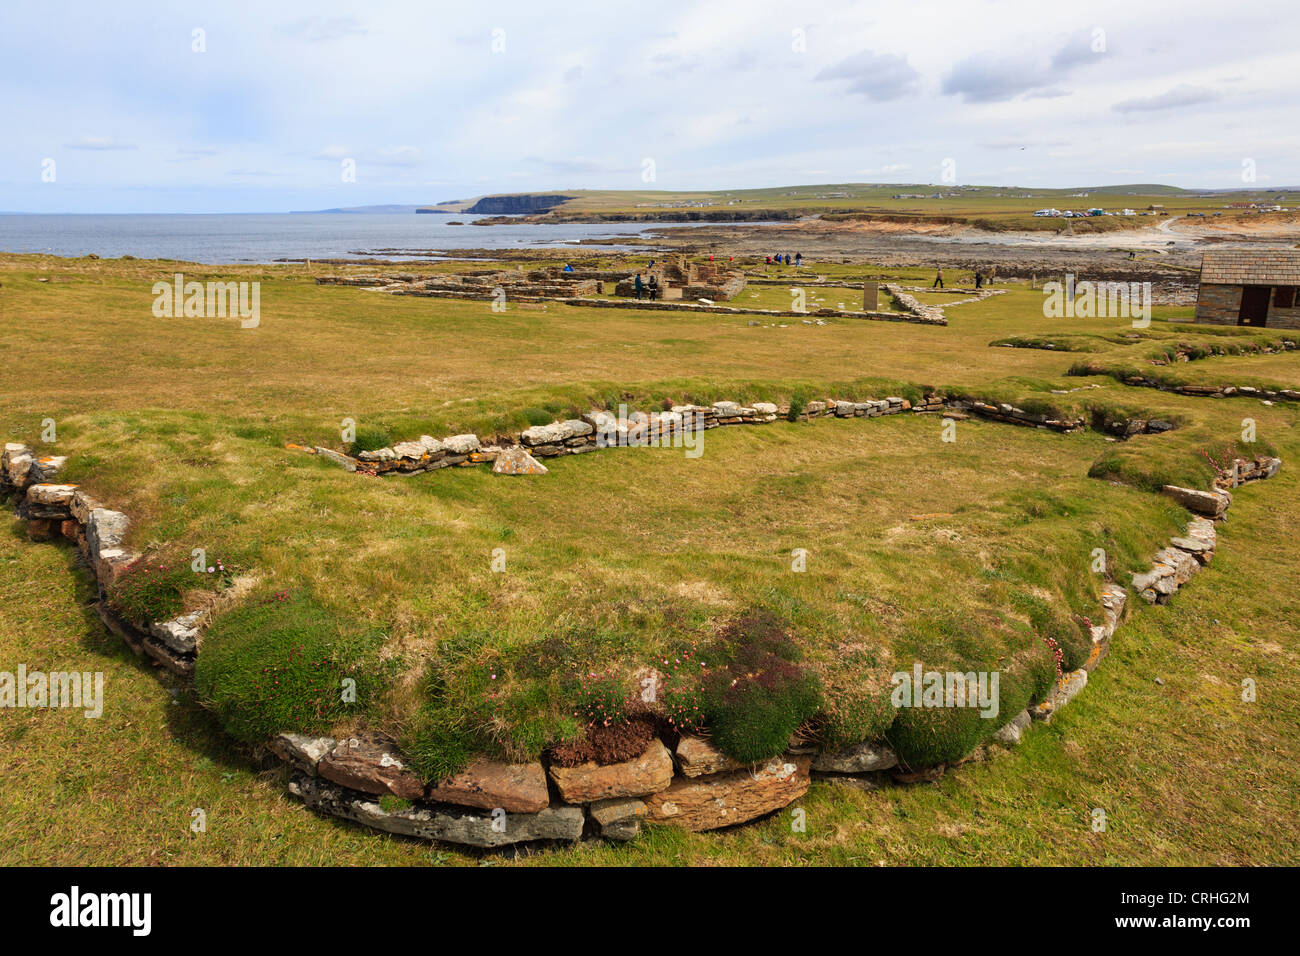 Remains of Norse long house in a 10th century settlement excavated on the Brough of Birsay Orkney Islands, Scotland, - Stock Image